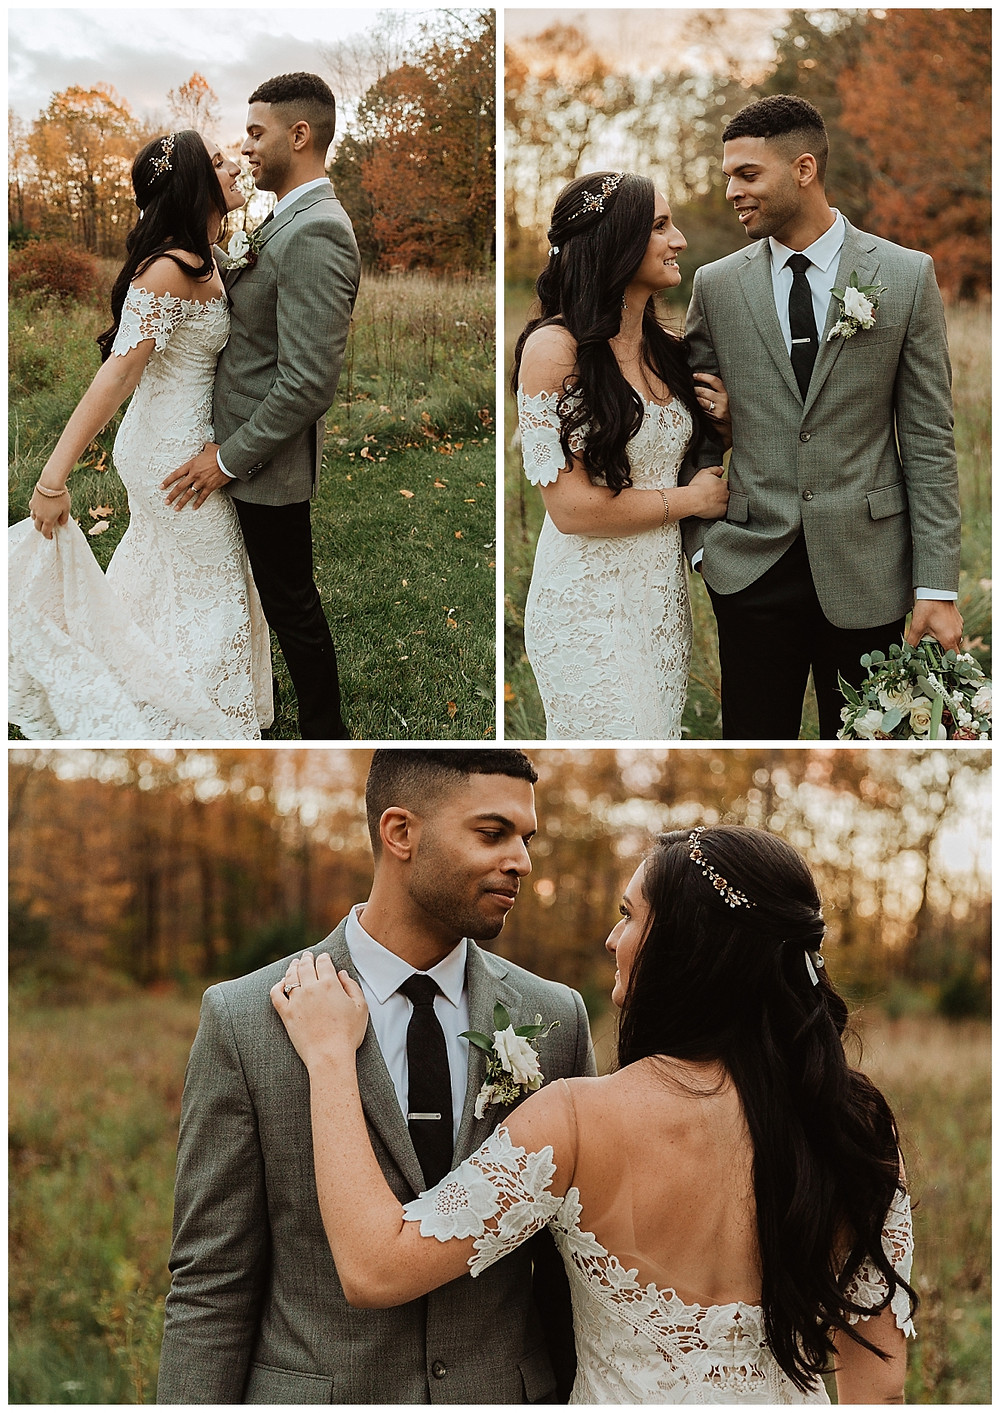 Outdoor Wooded Bride & Groom Portraits